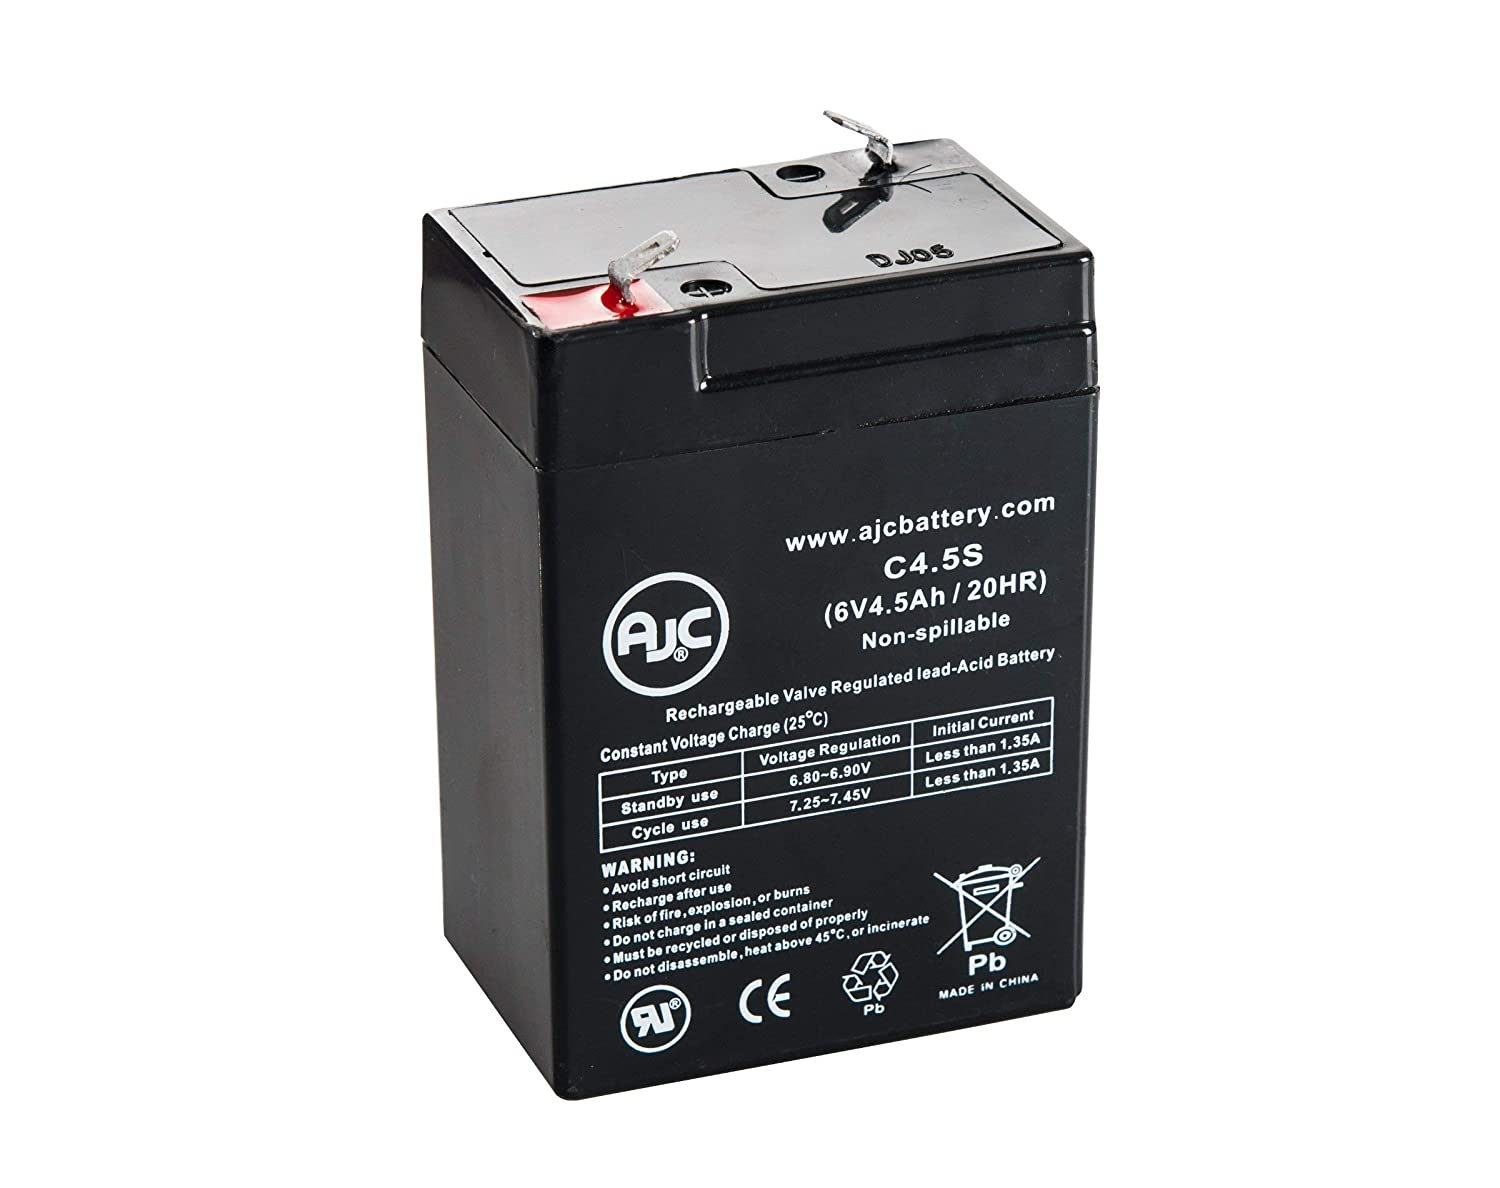 Portalac GS PE6V4.5F1 6V 4.5Ah Emergency Light Battery - This is an AJC Brand Replacement AJC Battery